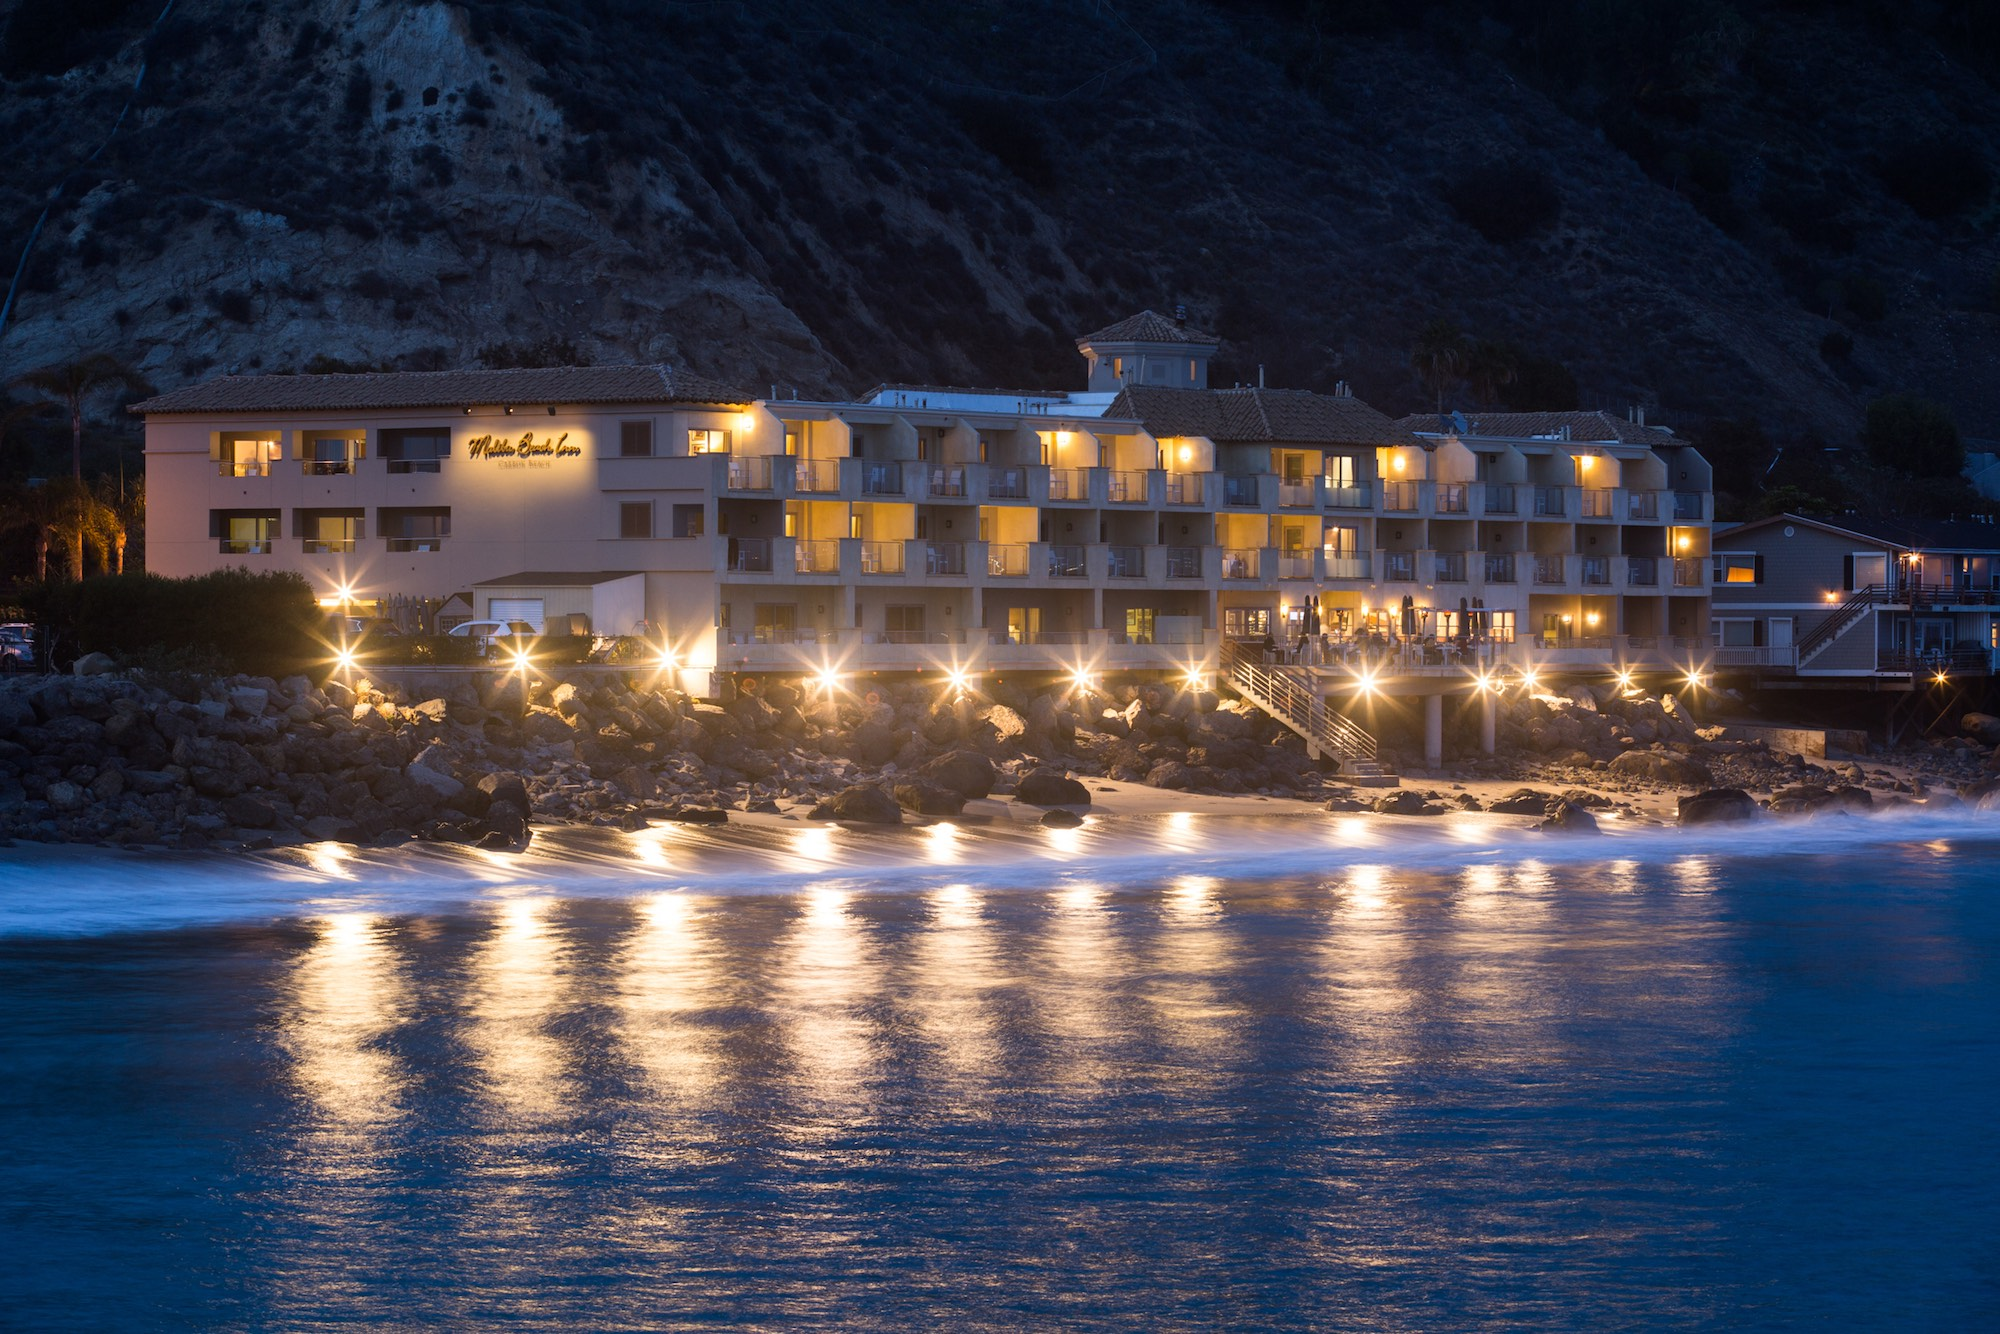 Malibu Beach Inn Hotel Exterior Ocean View At Night